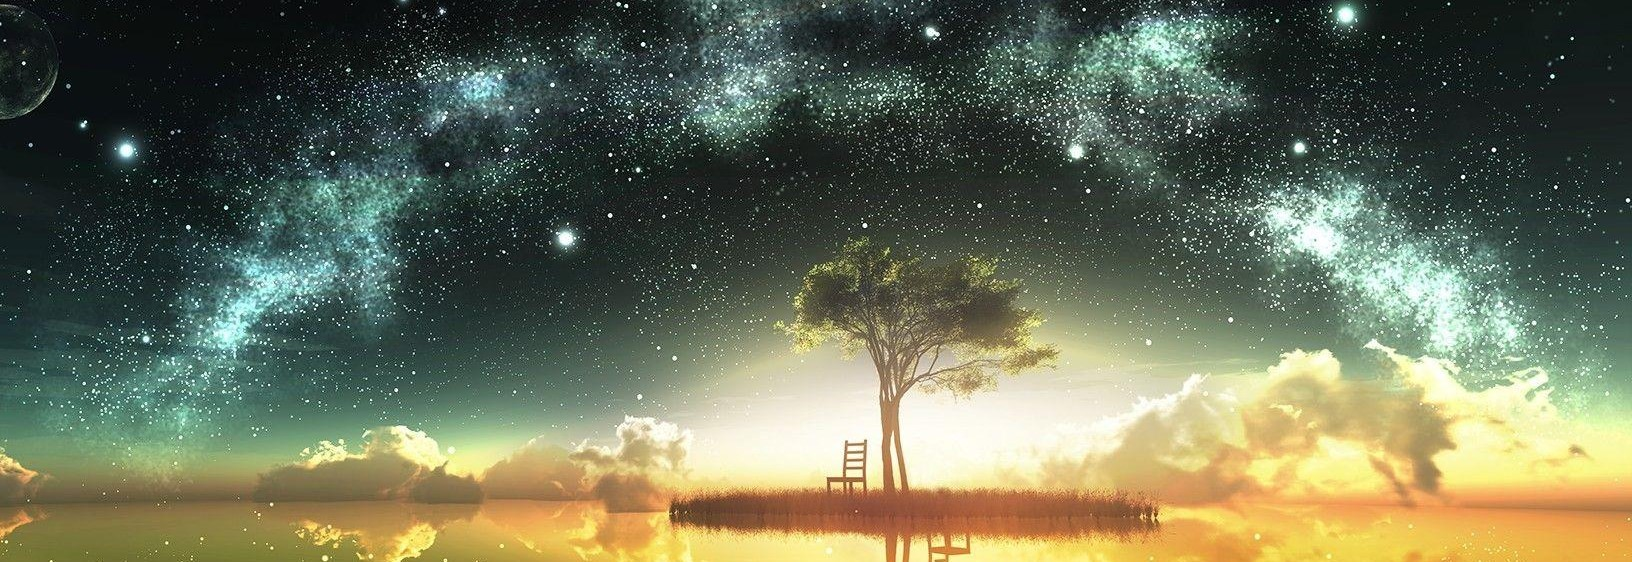 graphic-island-under-a-starry-sky (2)